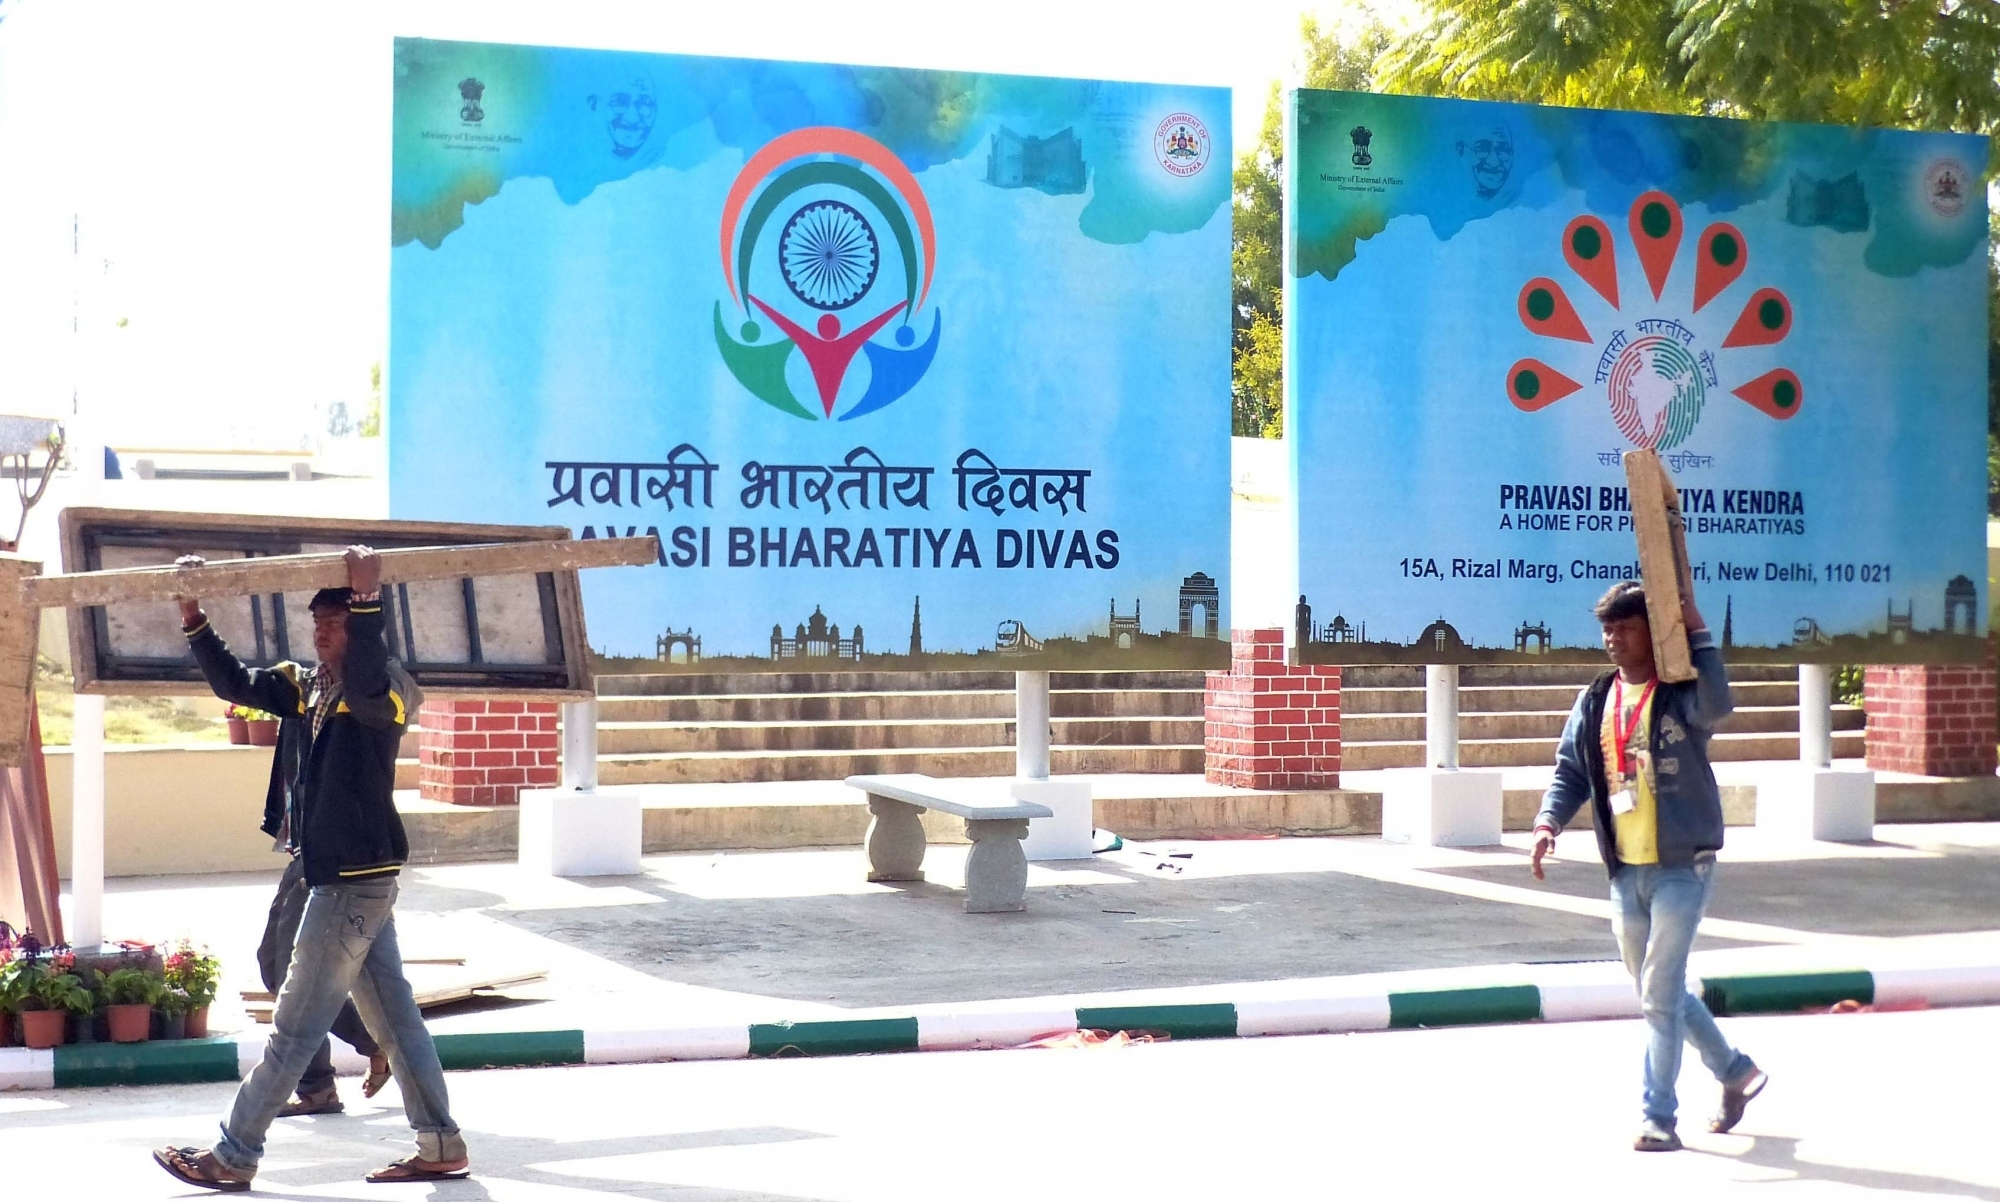 Bengaluru: Preparations for the Pravasi Bharatiya Divas 2017 conference underway at Bangalore International Exhibition Centre in Bengaluru on Jan 5, 2017. (Photo: IANS)